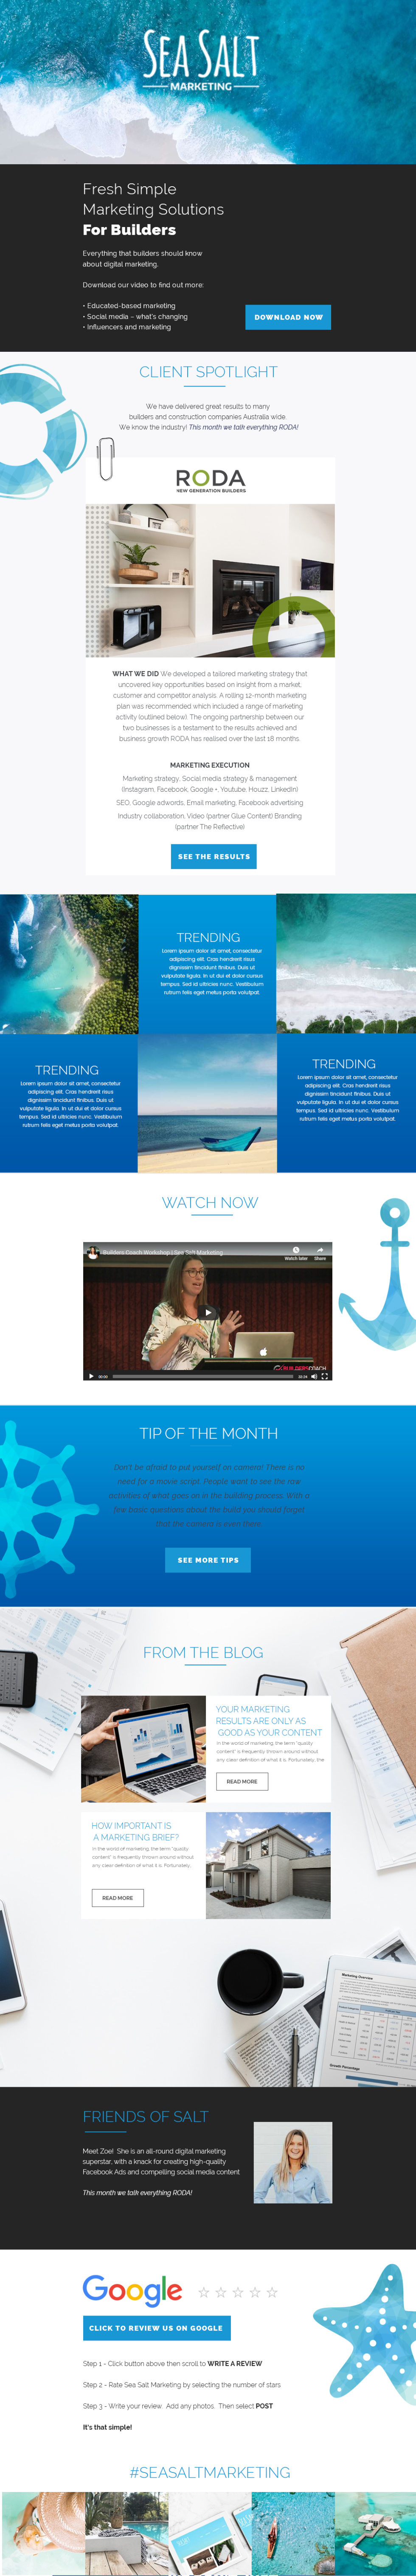 Email newsletter template featuring company spotlights. Template includes graphic design, images, and color themes in shades of blue. Text box descriptions next to images and link to e-commerce stores.